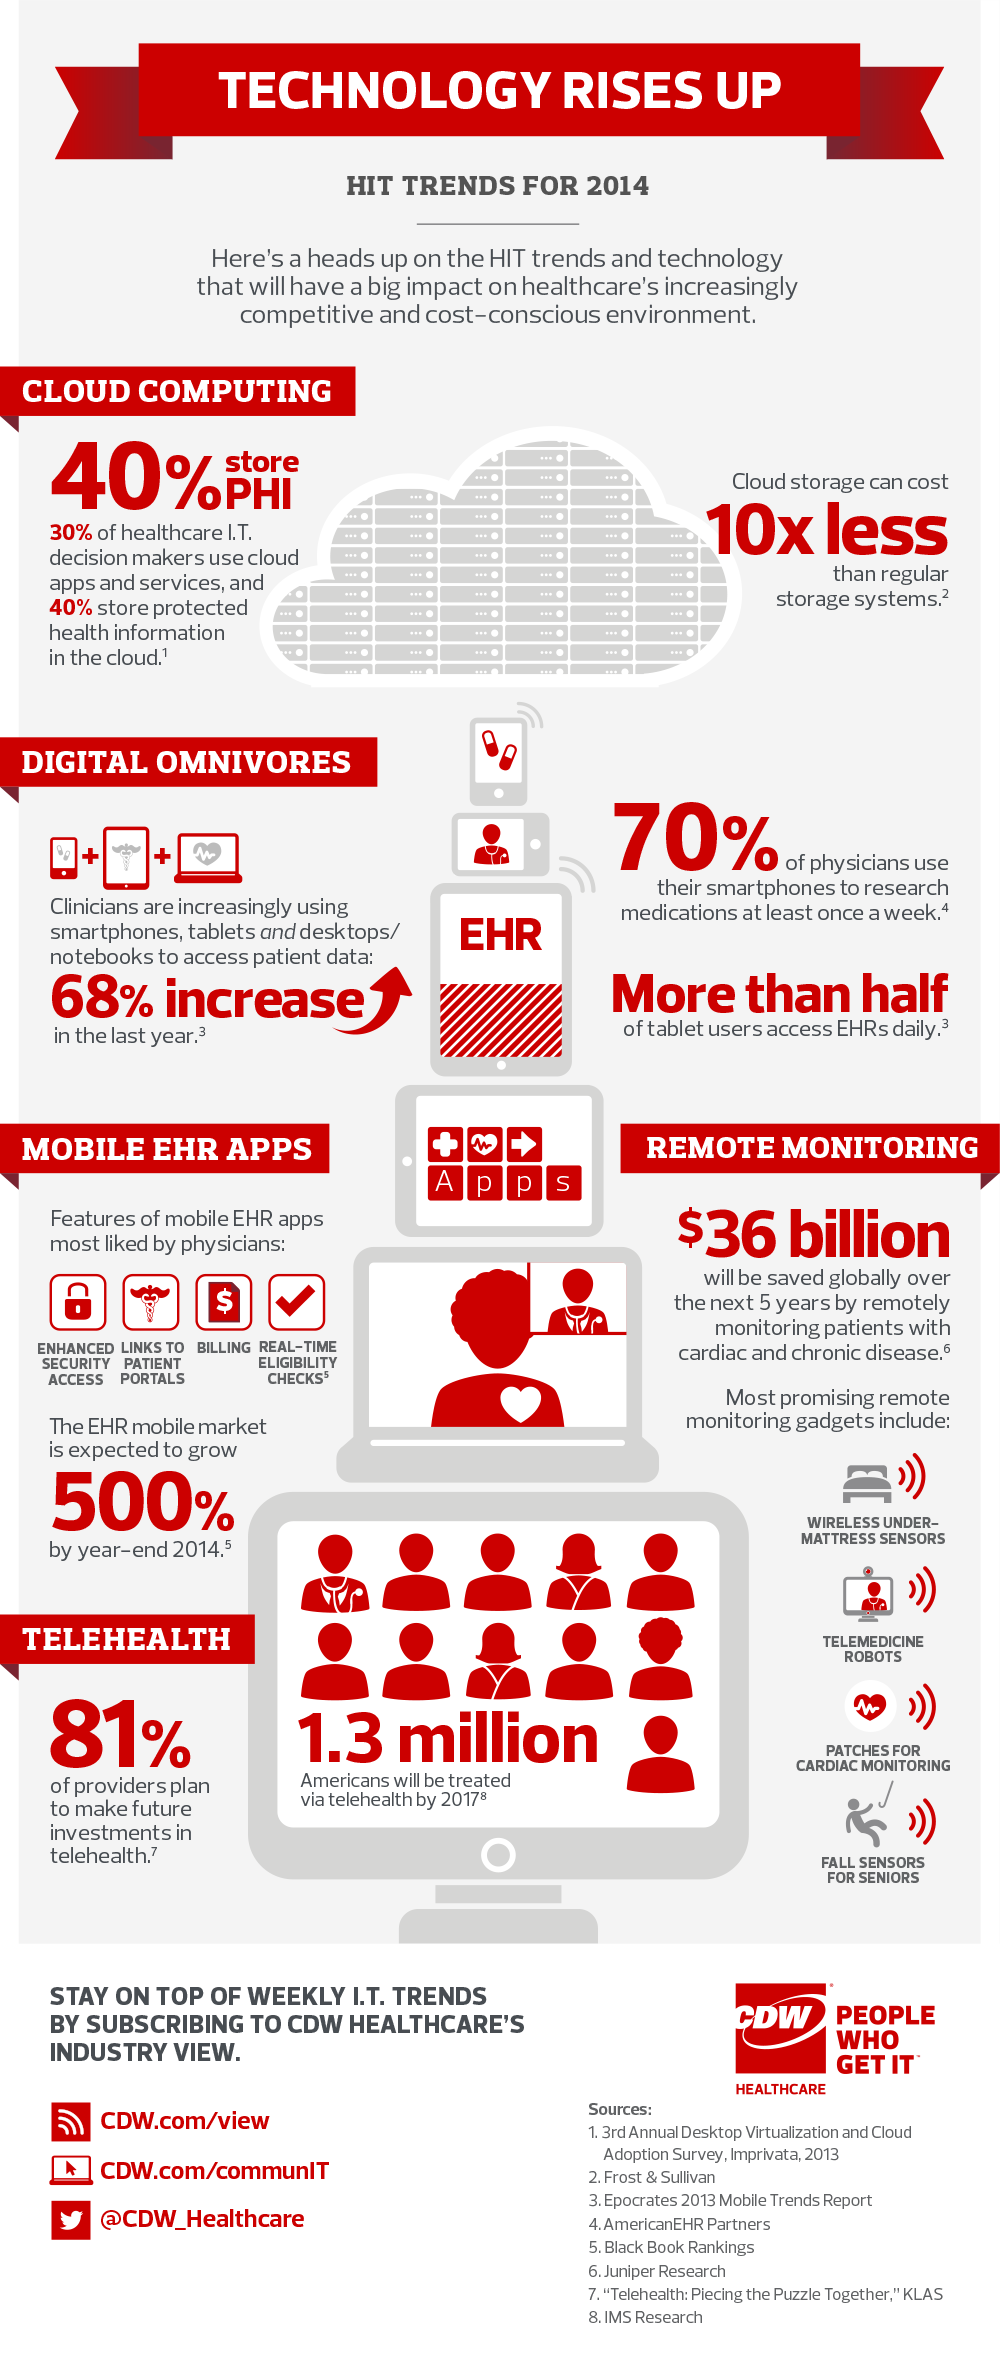 Healthcare_IT_Trends_Infographic_0114_1000.png